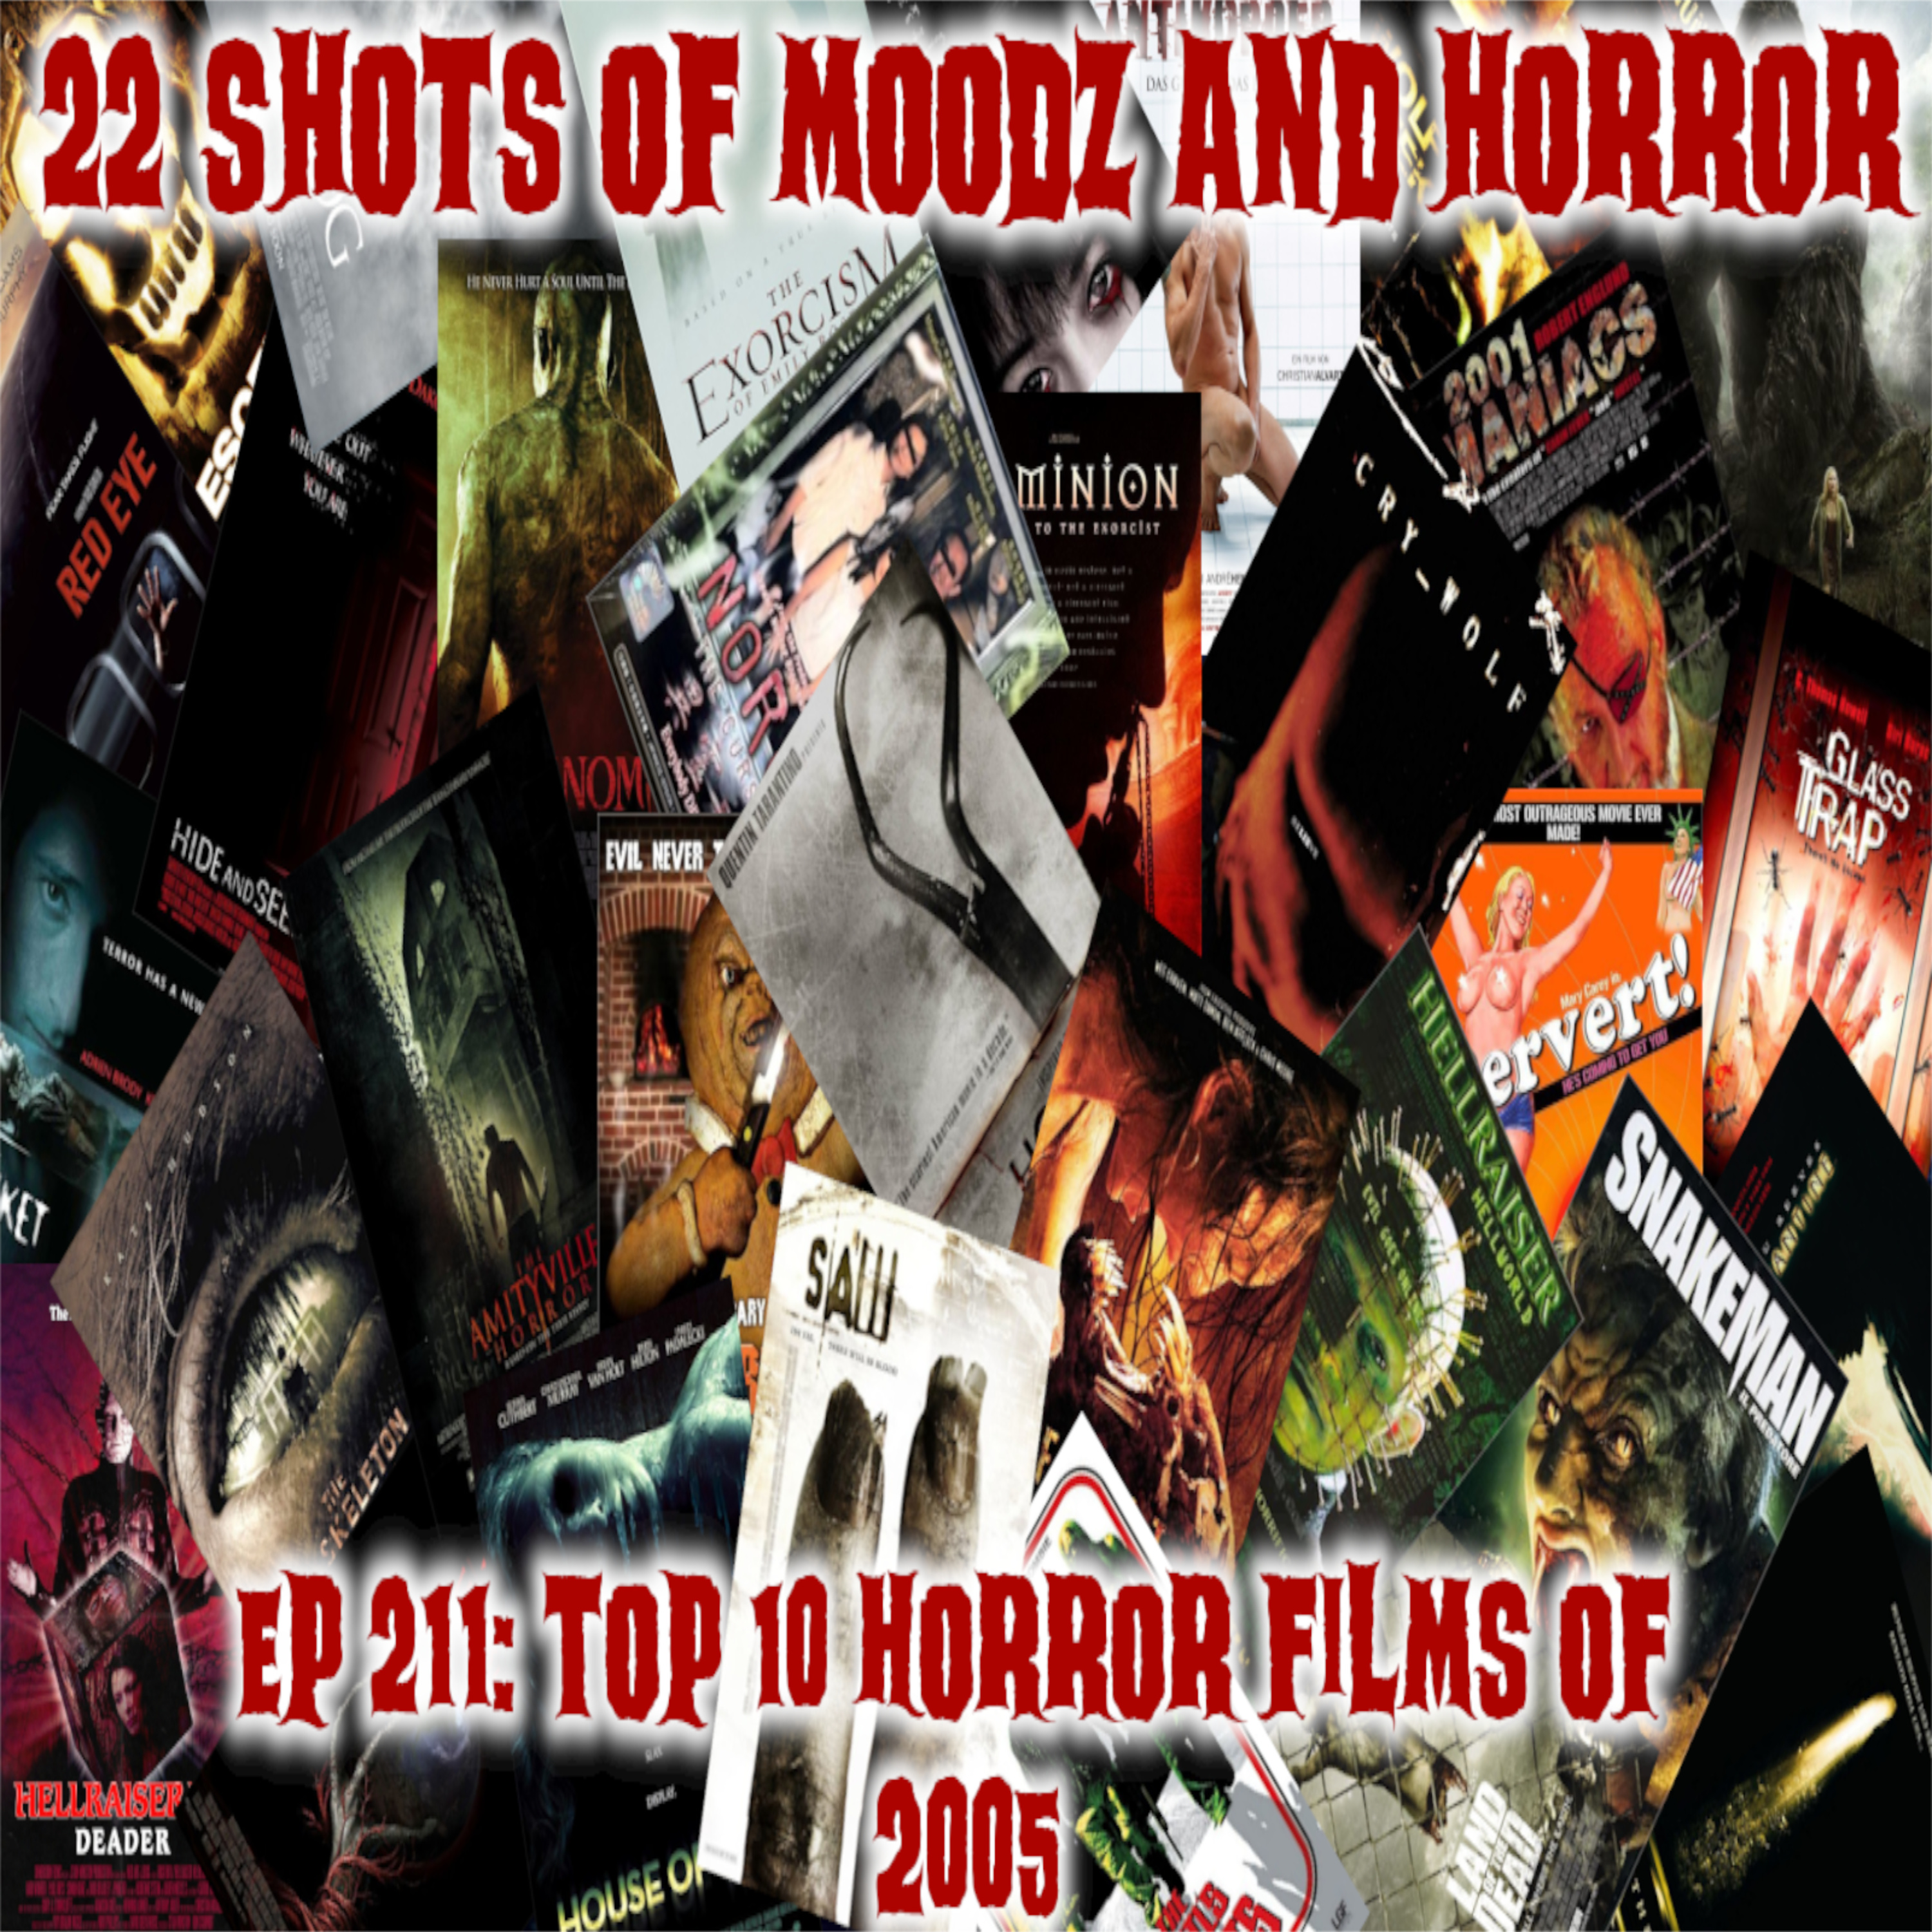 Ep 211: The Top 10 Horror Films of 2005